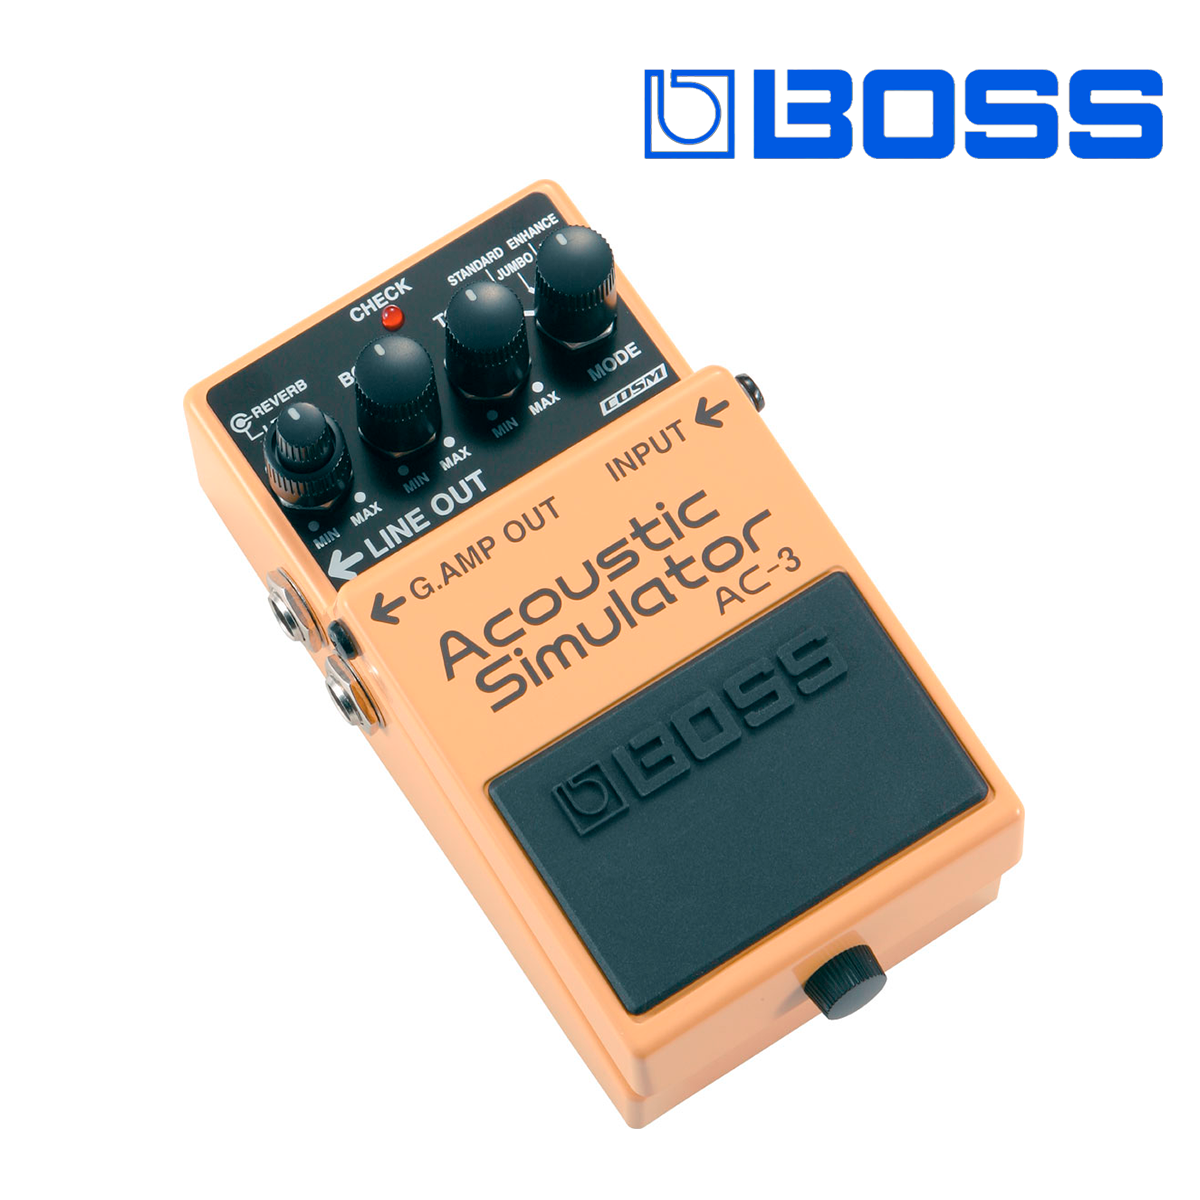 PEDAL EFECTO BOSS ACCOUSTIC SIMULAT